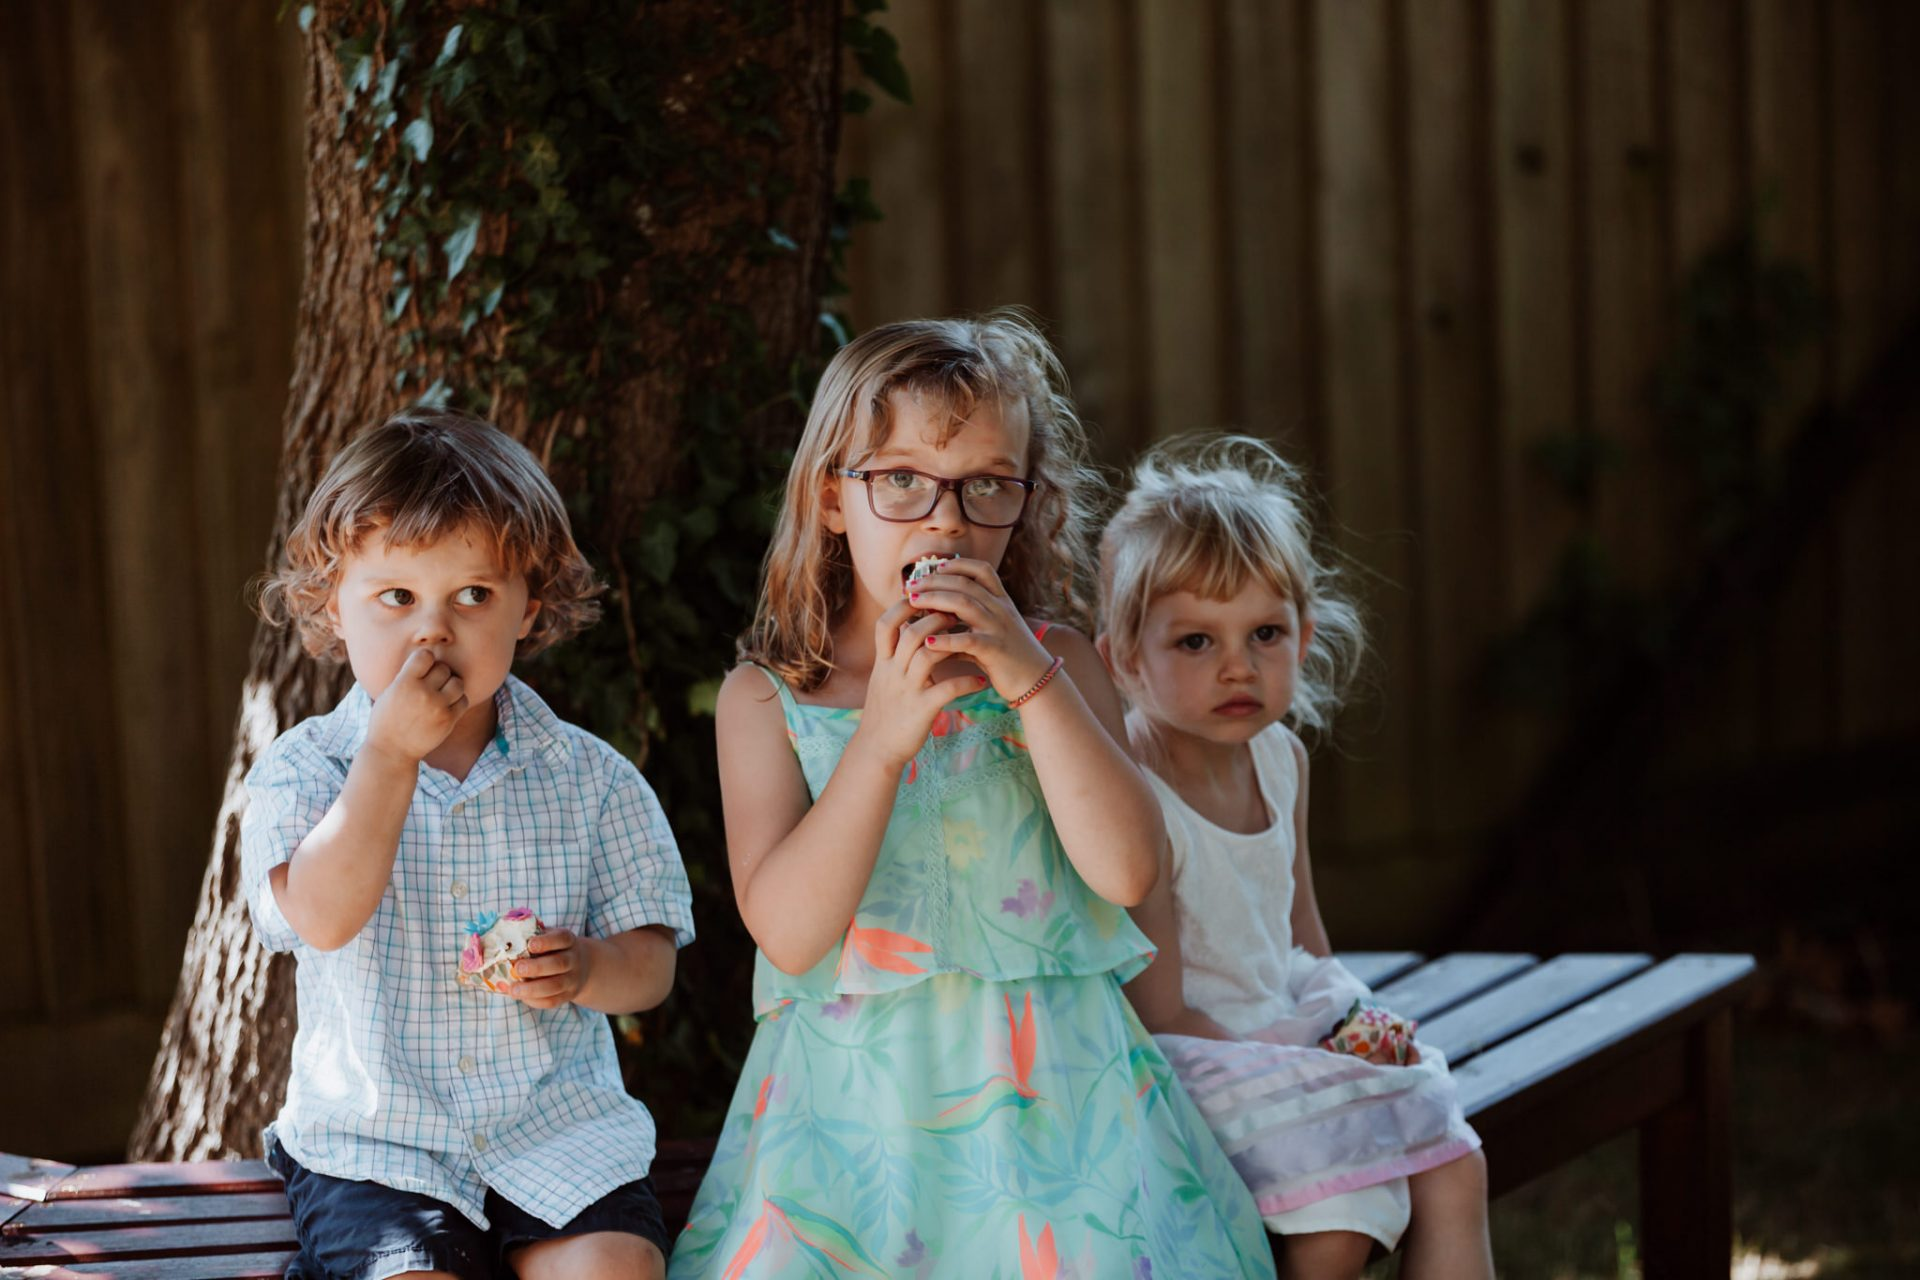 children eating cupcakes under a tree